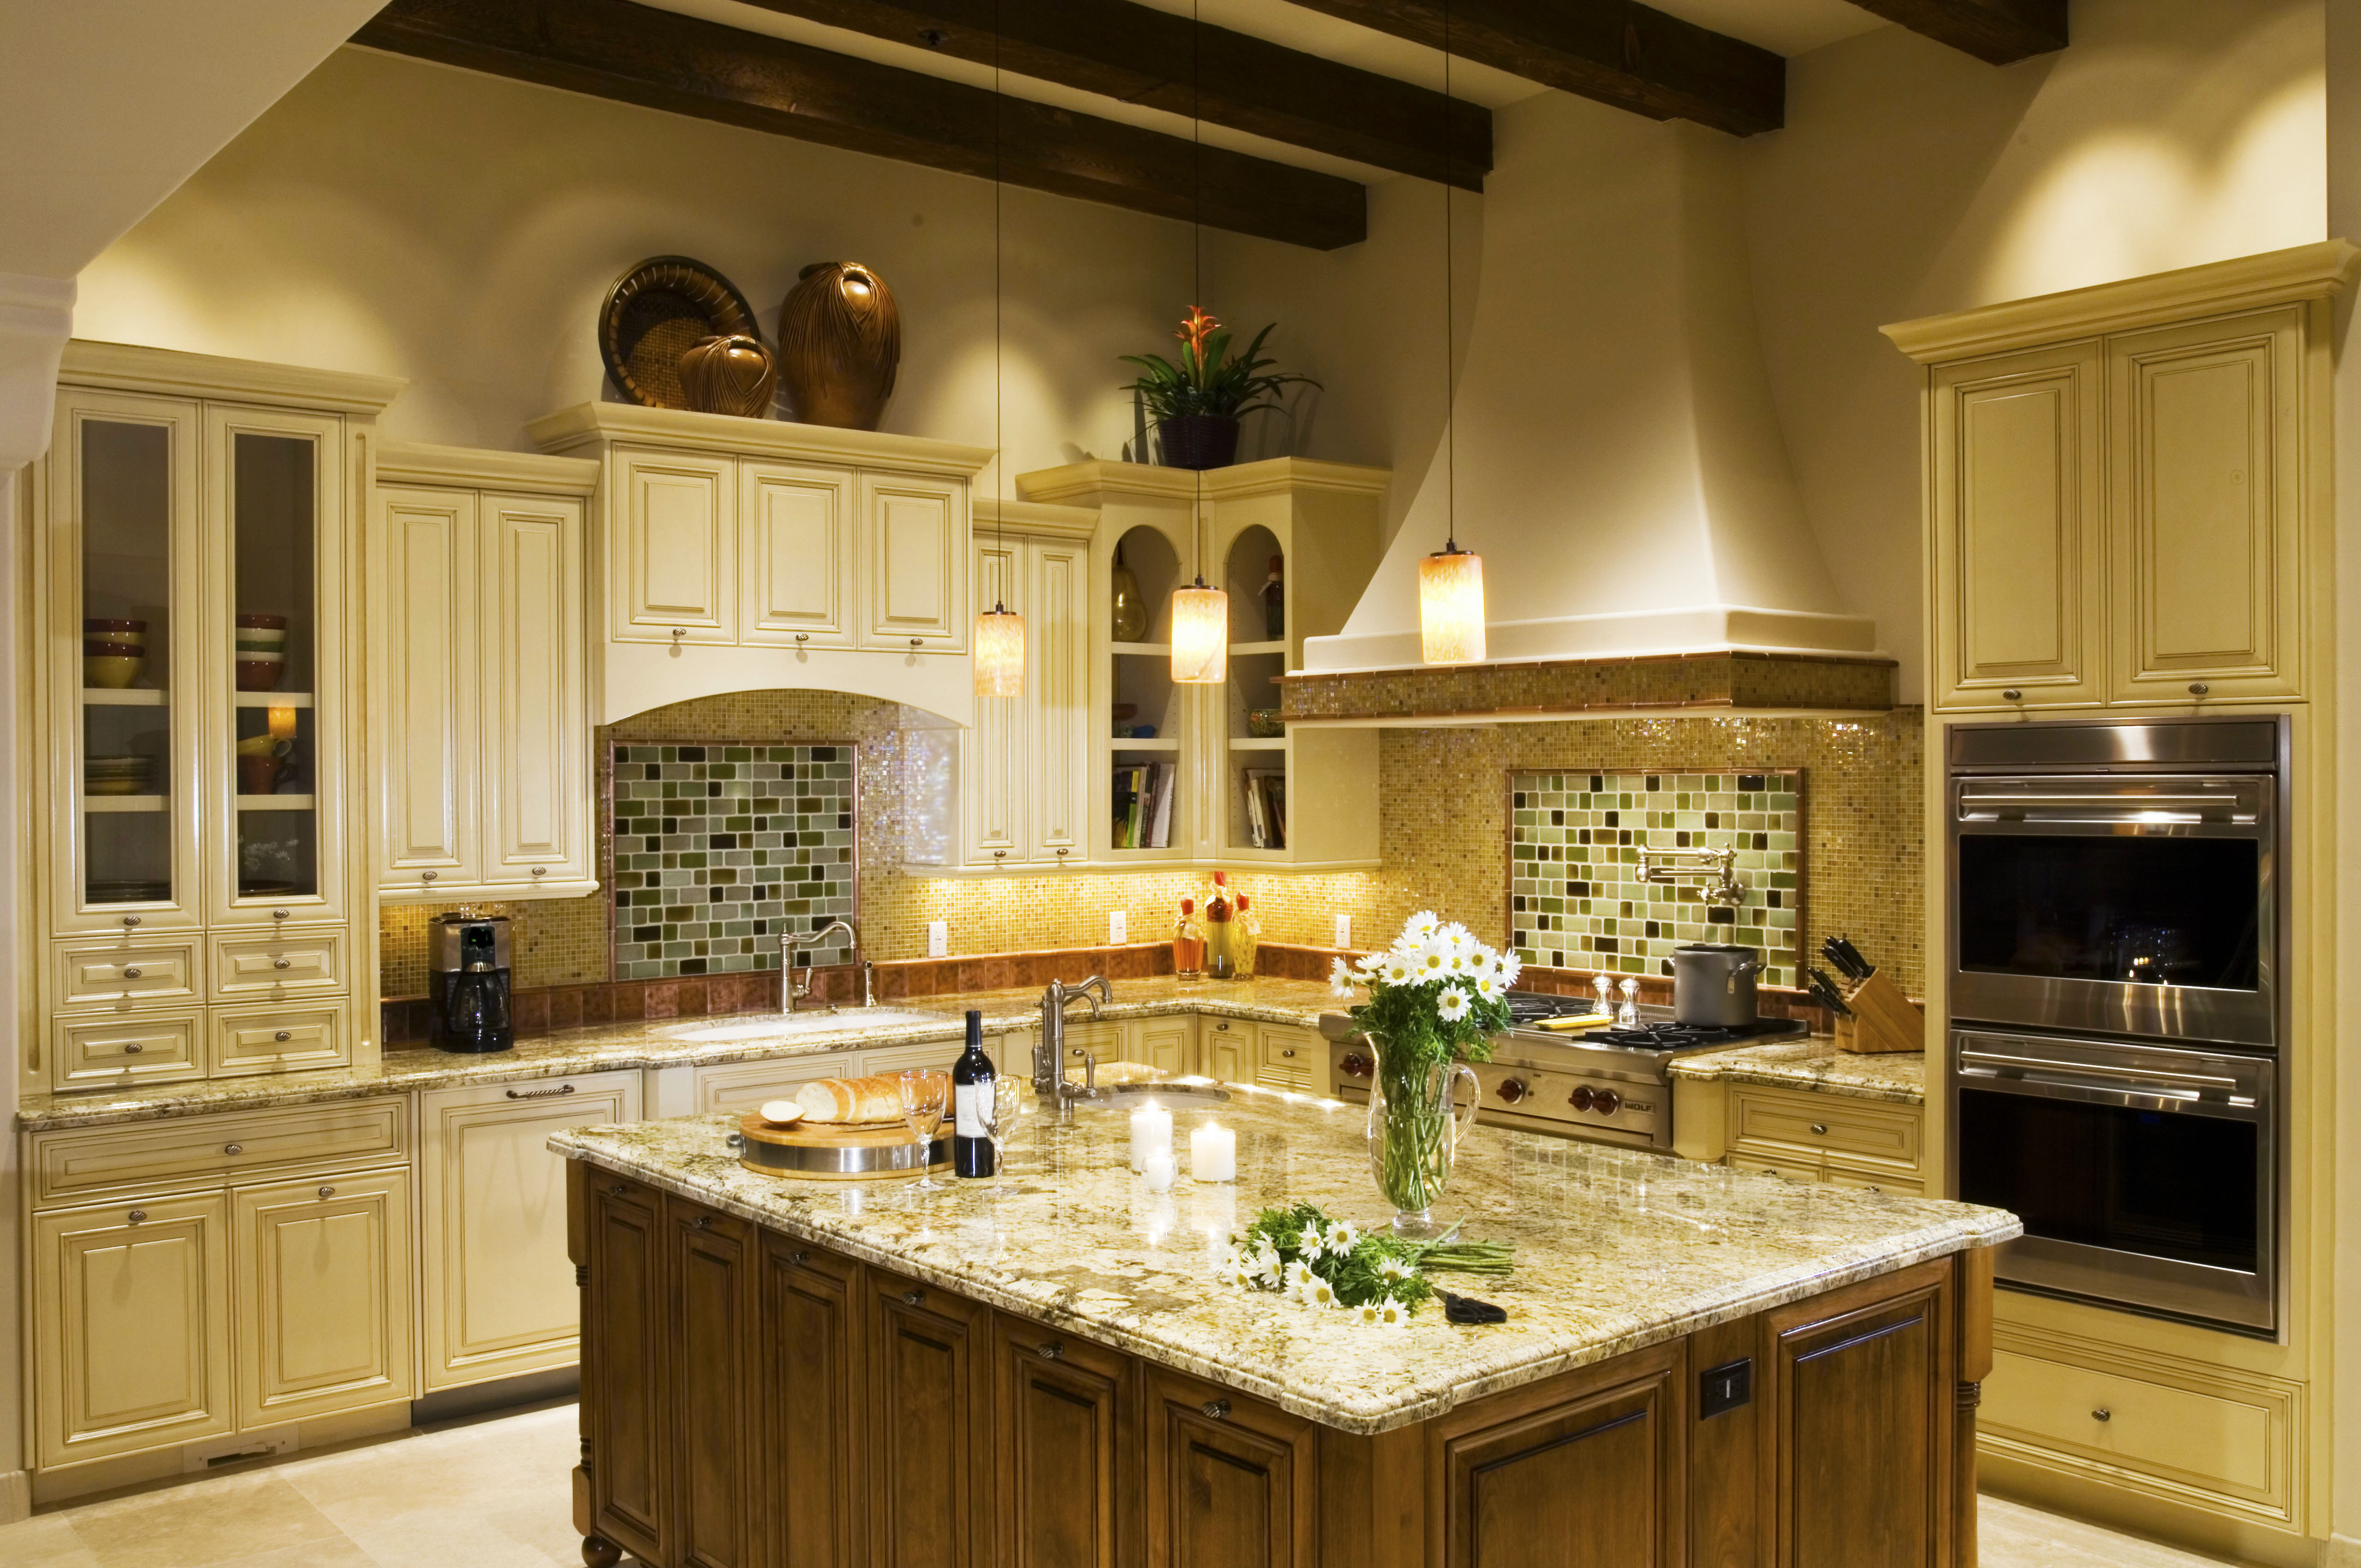 Cost to remodel kitchen backsplash designs roy home design for Normal kitchen design